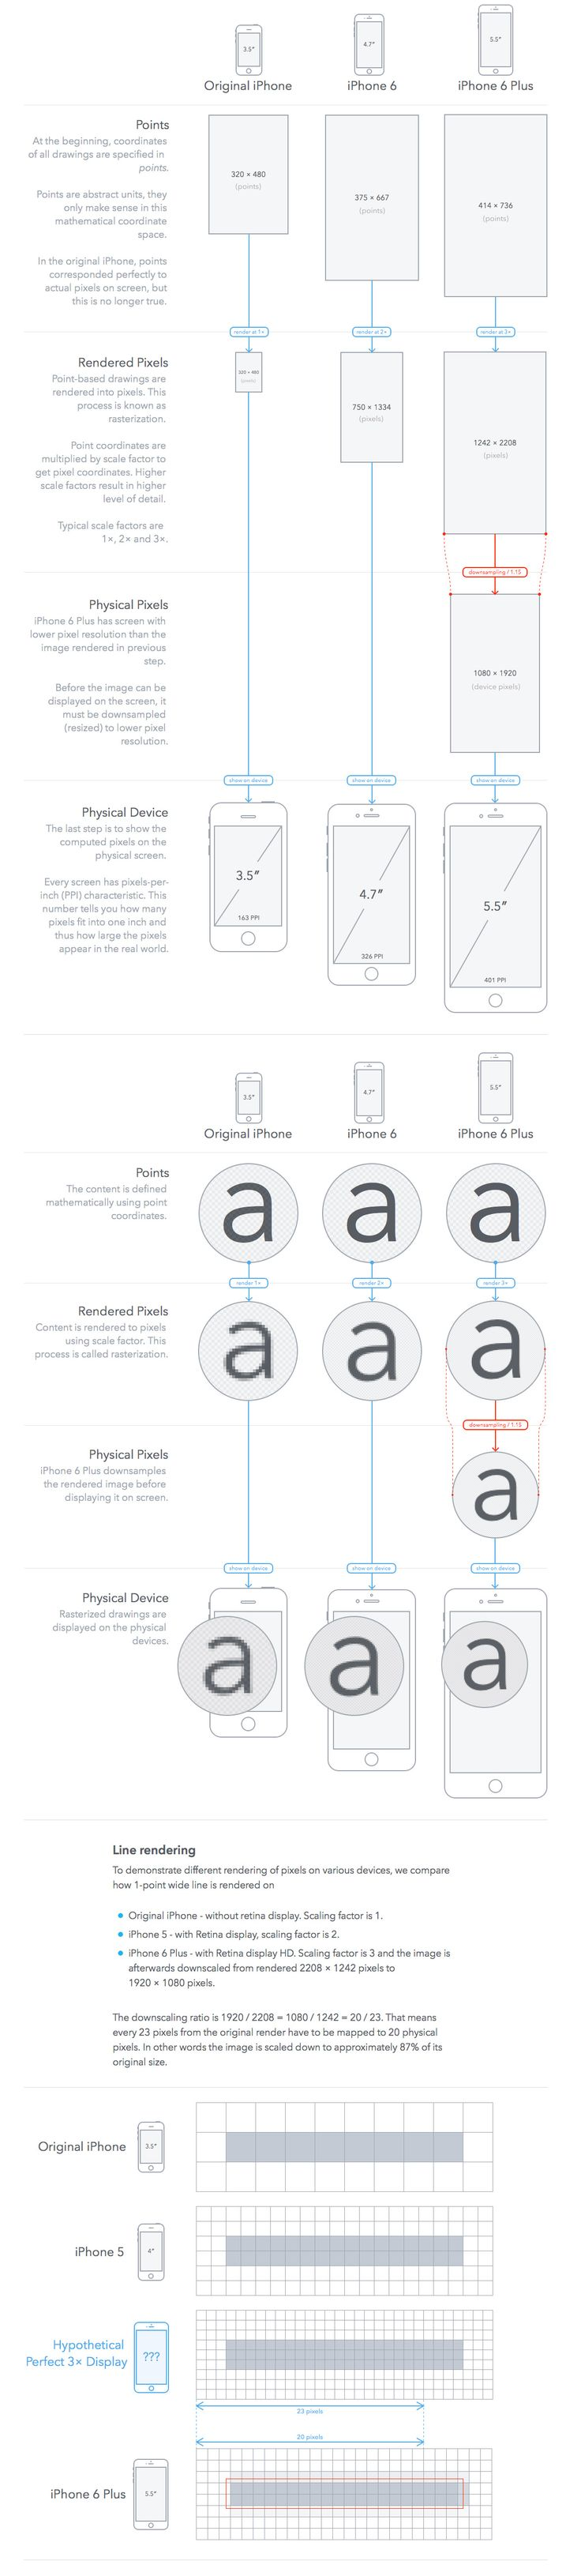 Iphone Screen Size and resolution guide